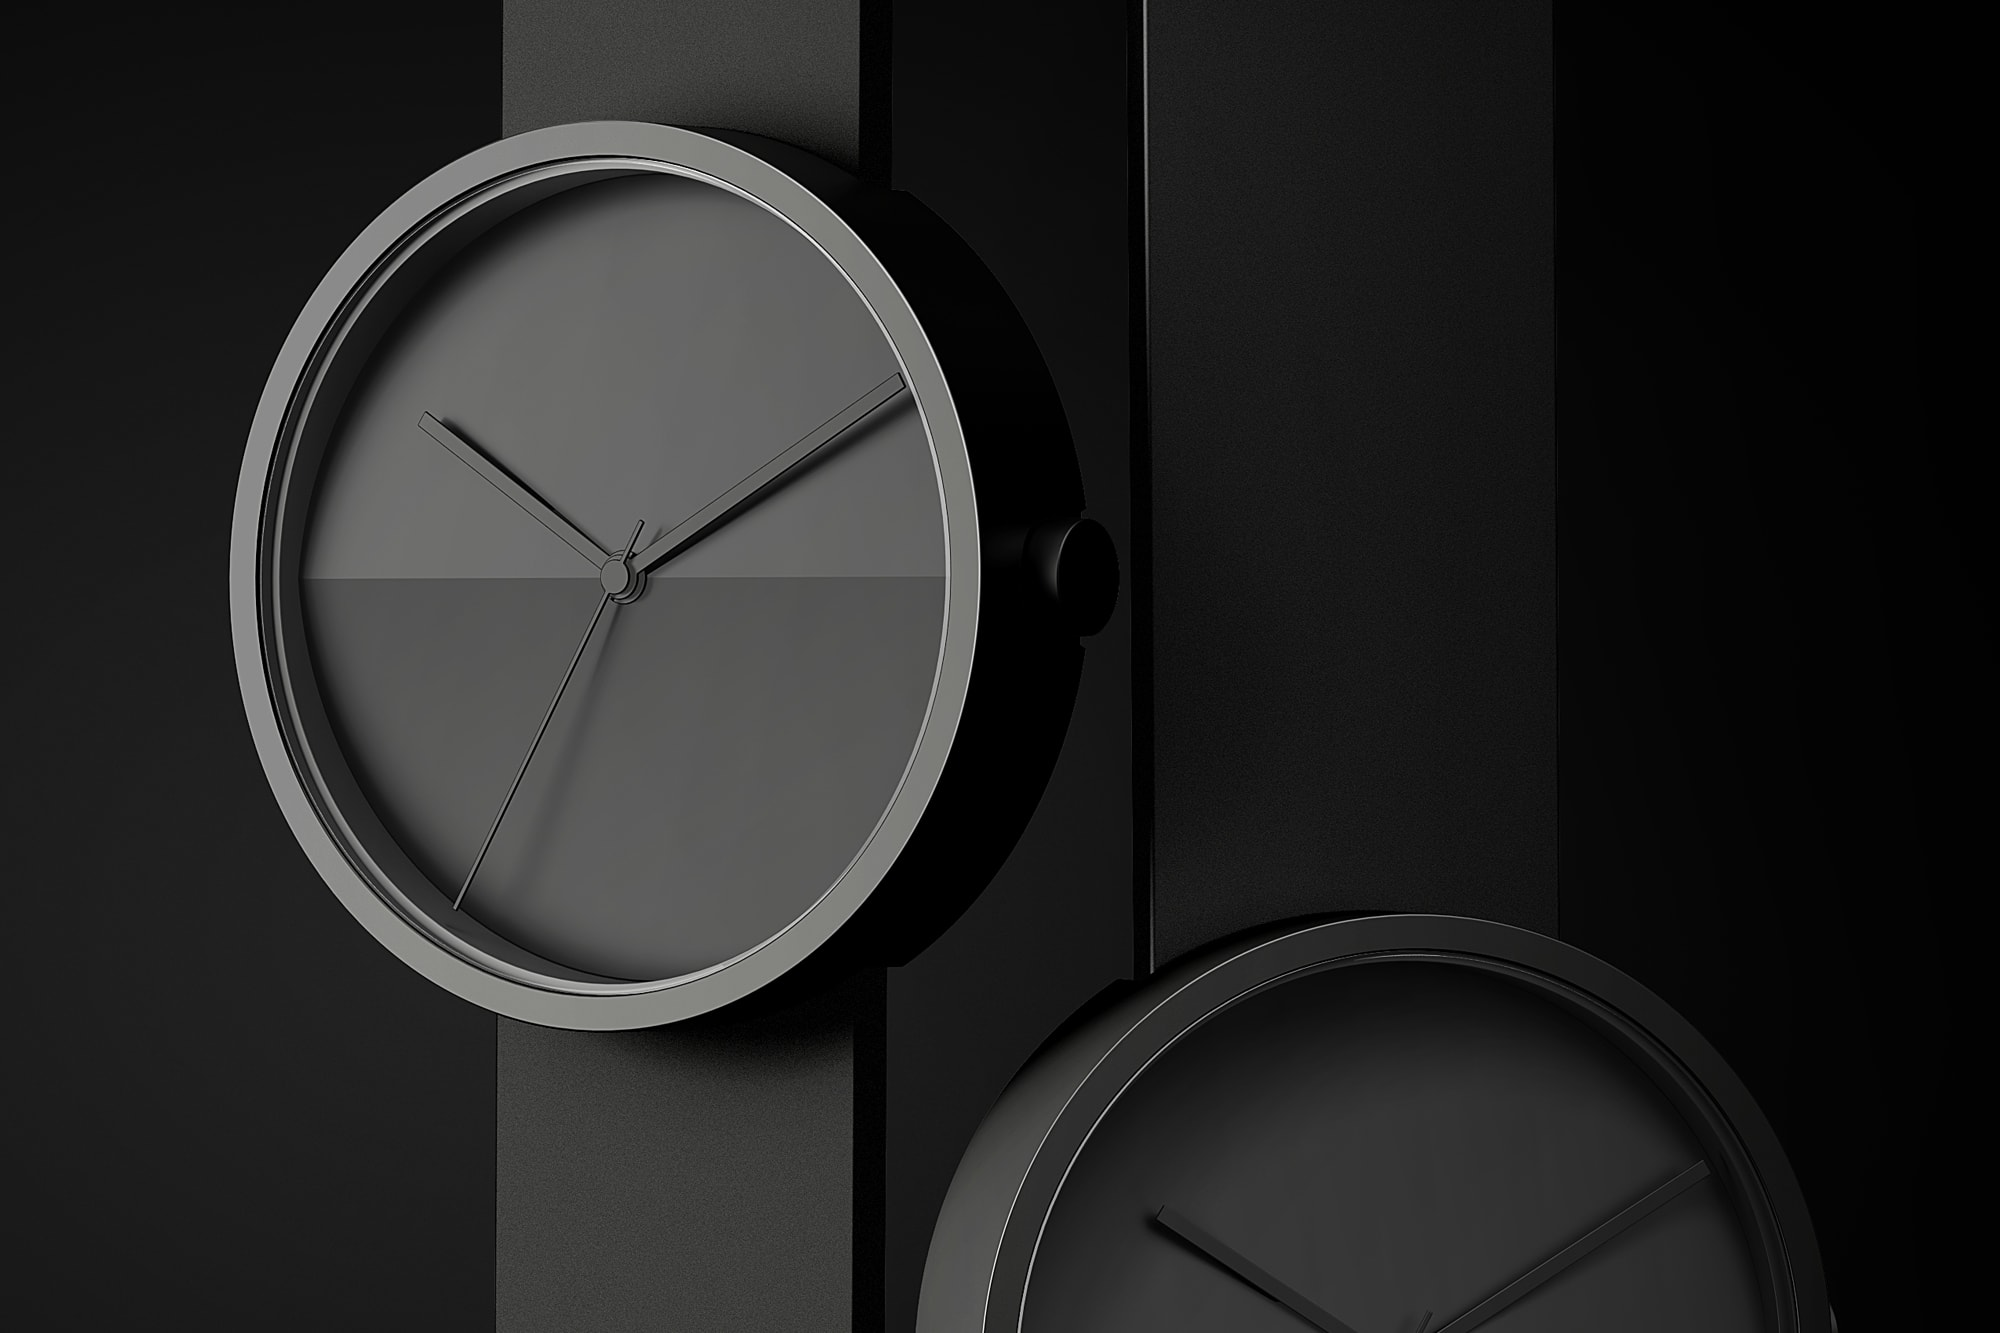 Front view of two Horizon watches close up in black on a black background.